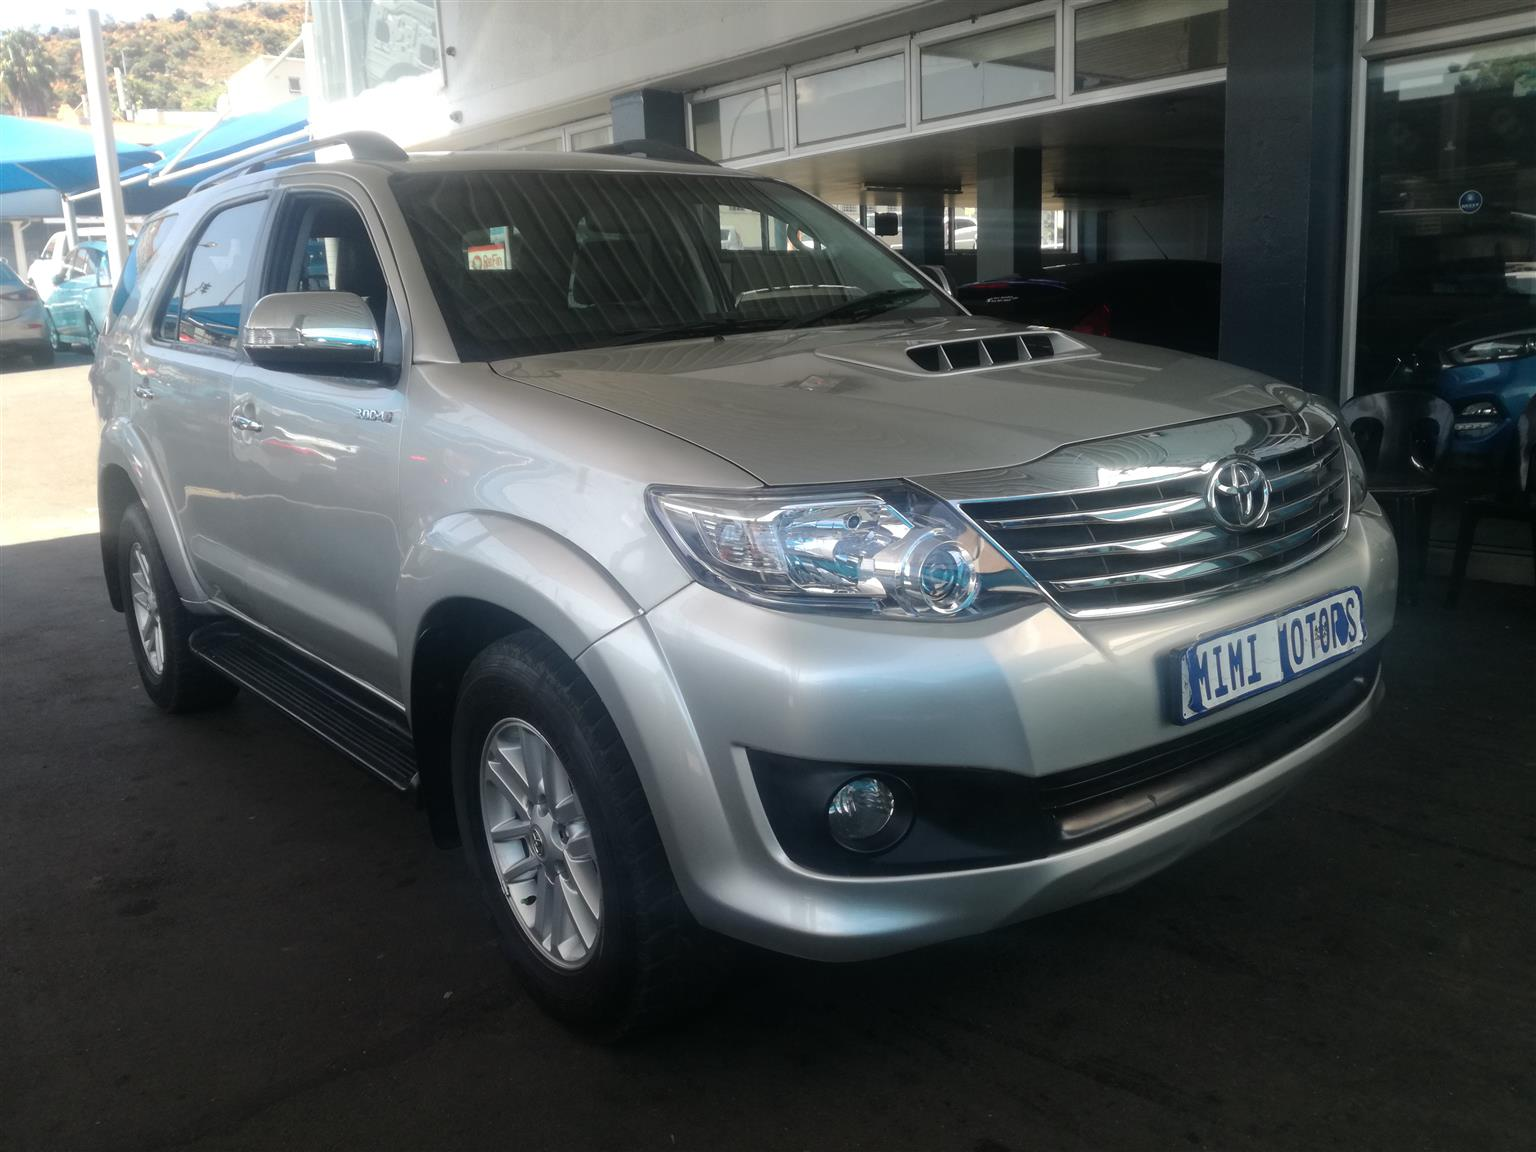 2014 Toyota Fortuner 3.0D 4D 4x4 Heritage Edition automatic